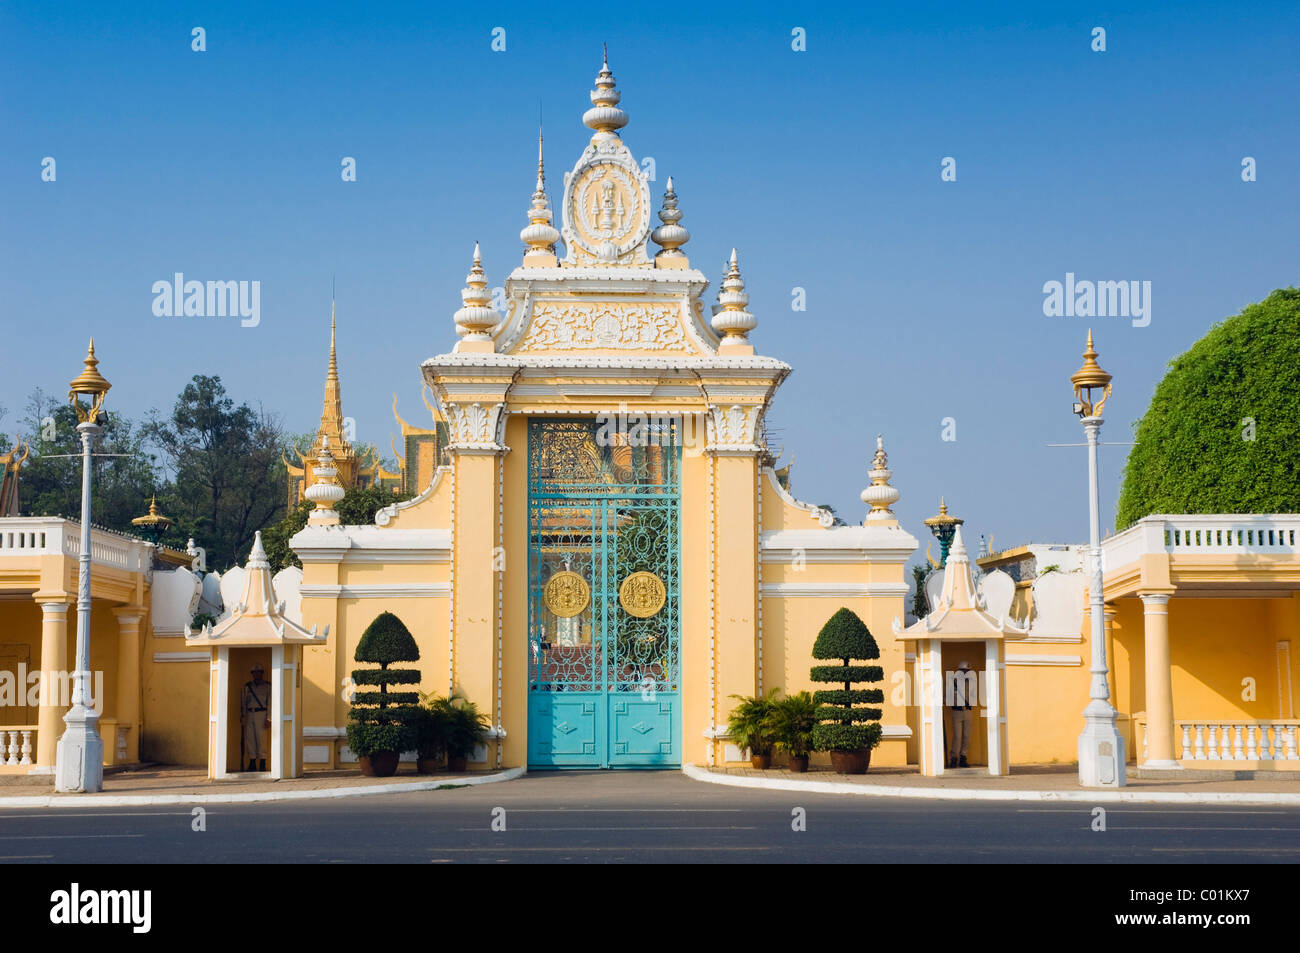 victory gate royal palace phnom penh cambodia indochina stock photo 34458319 alamy. Black Bedroom Furniture Sets. Home Design Ideas